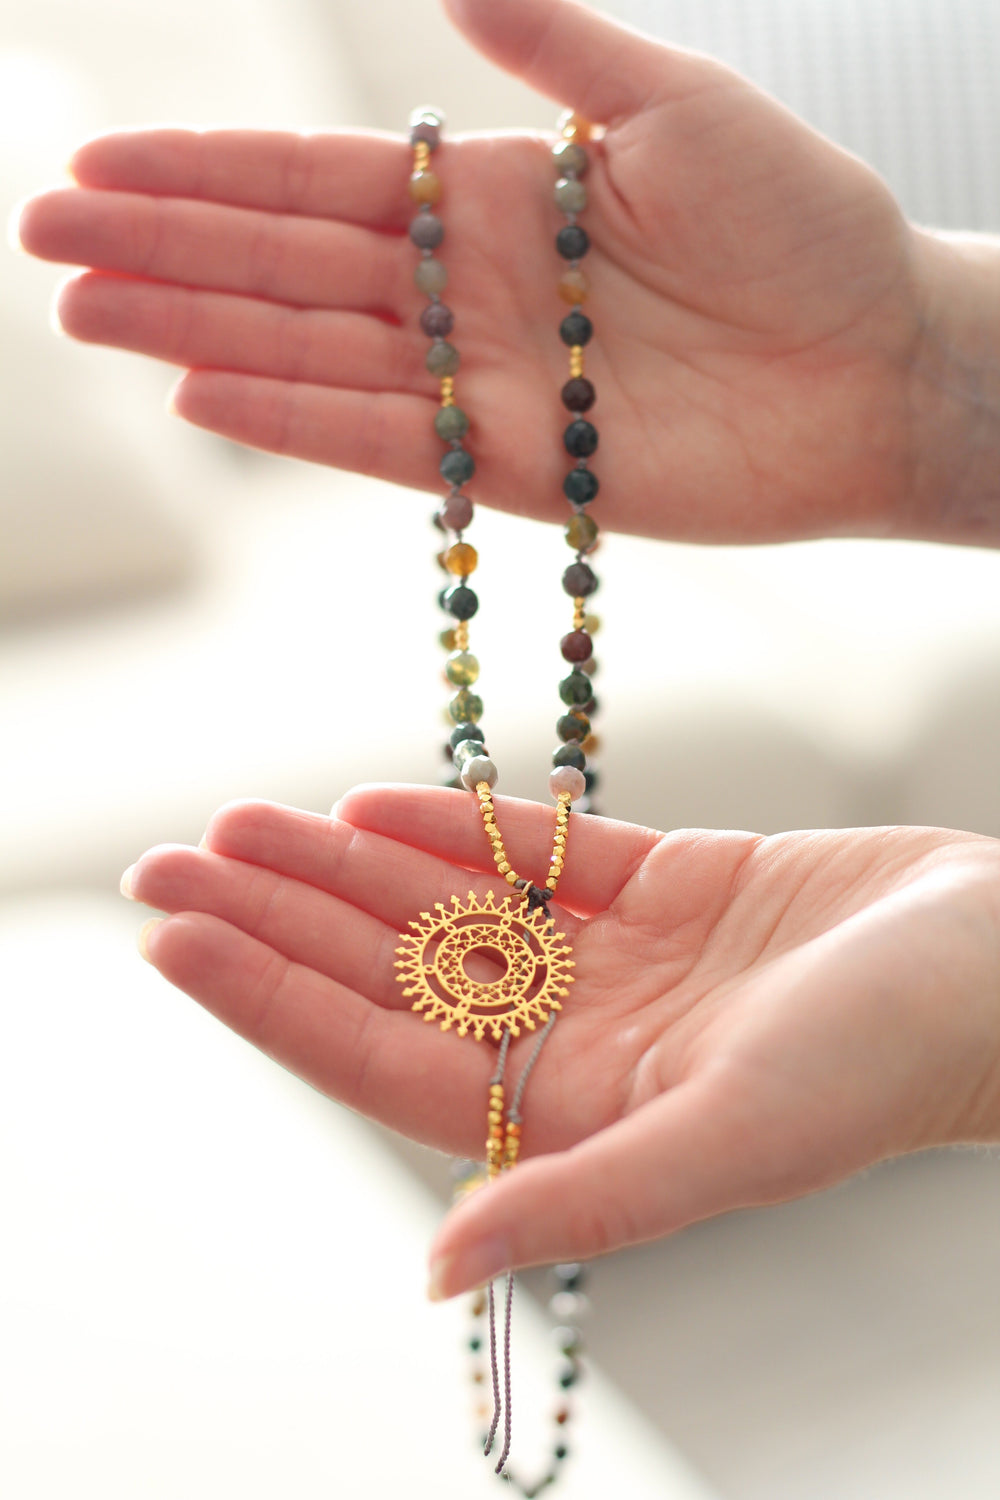 Powerful Healing Mala Necklace